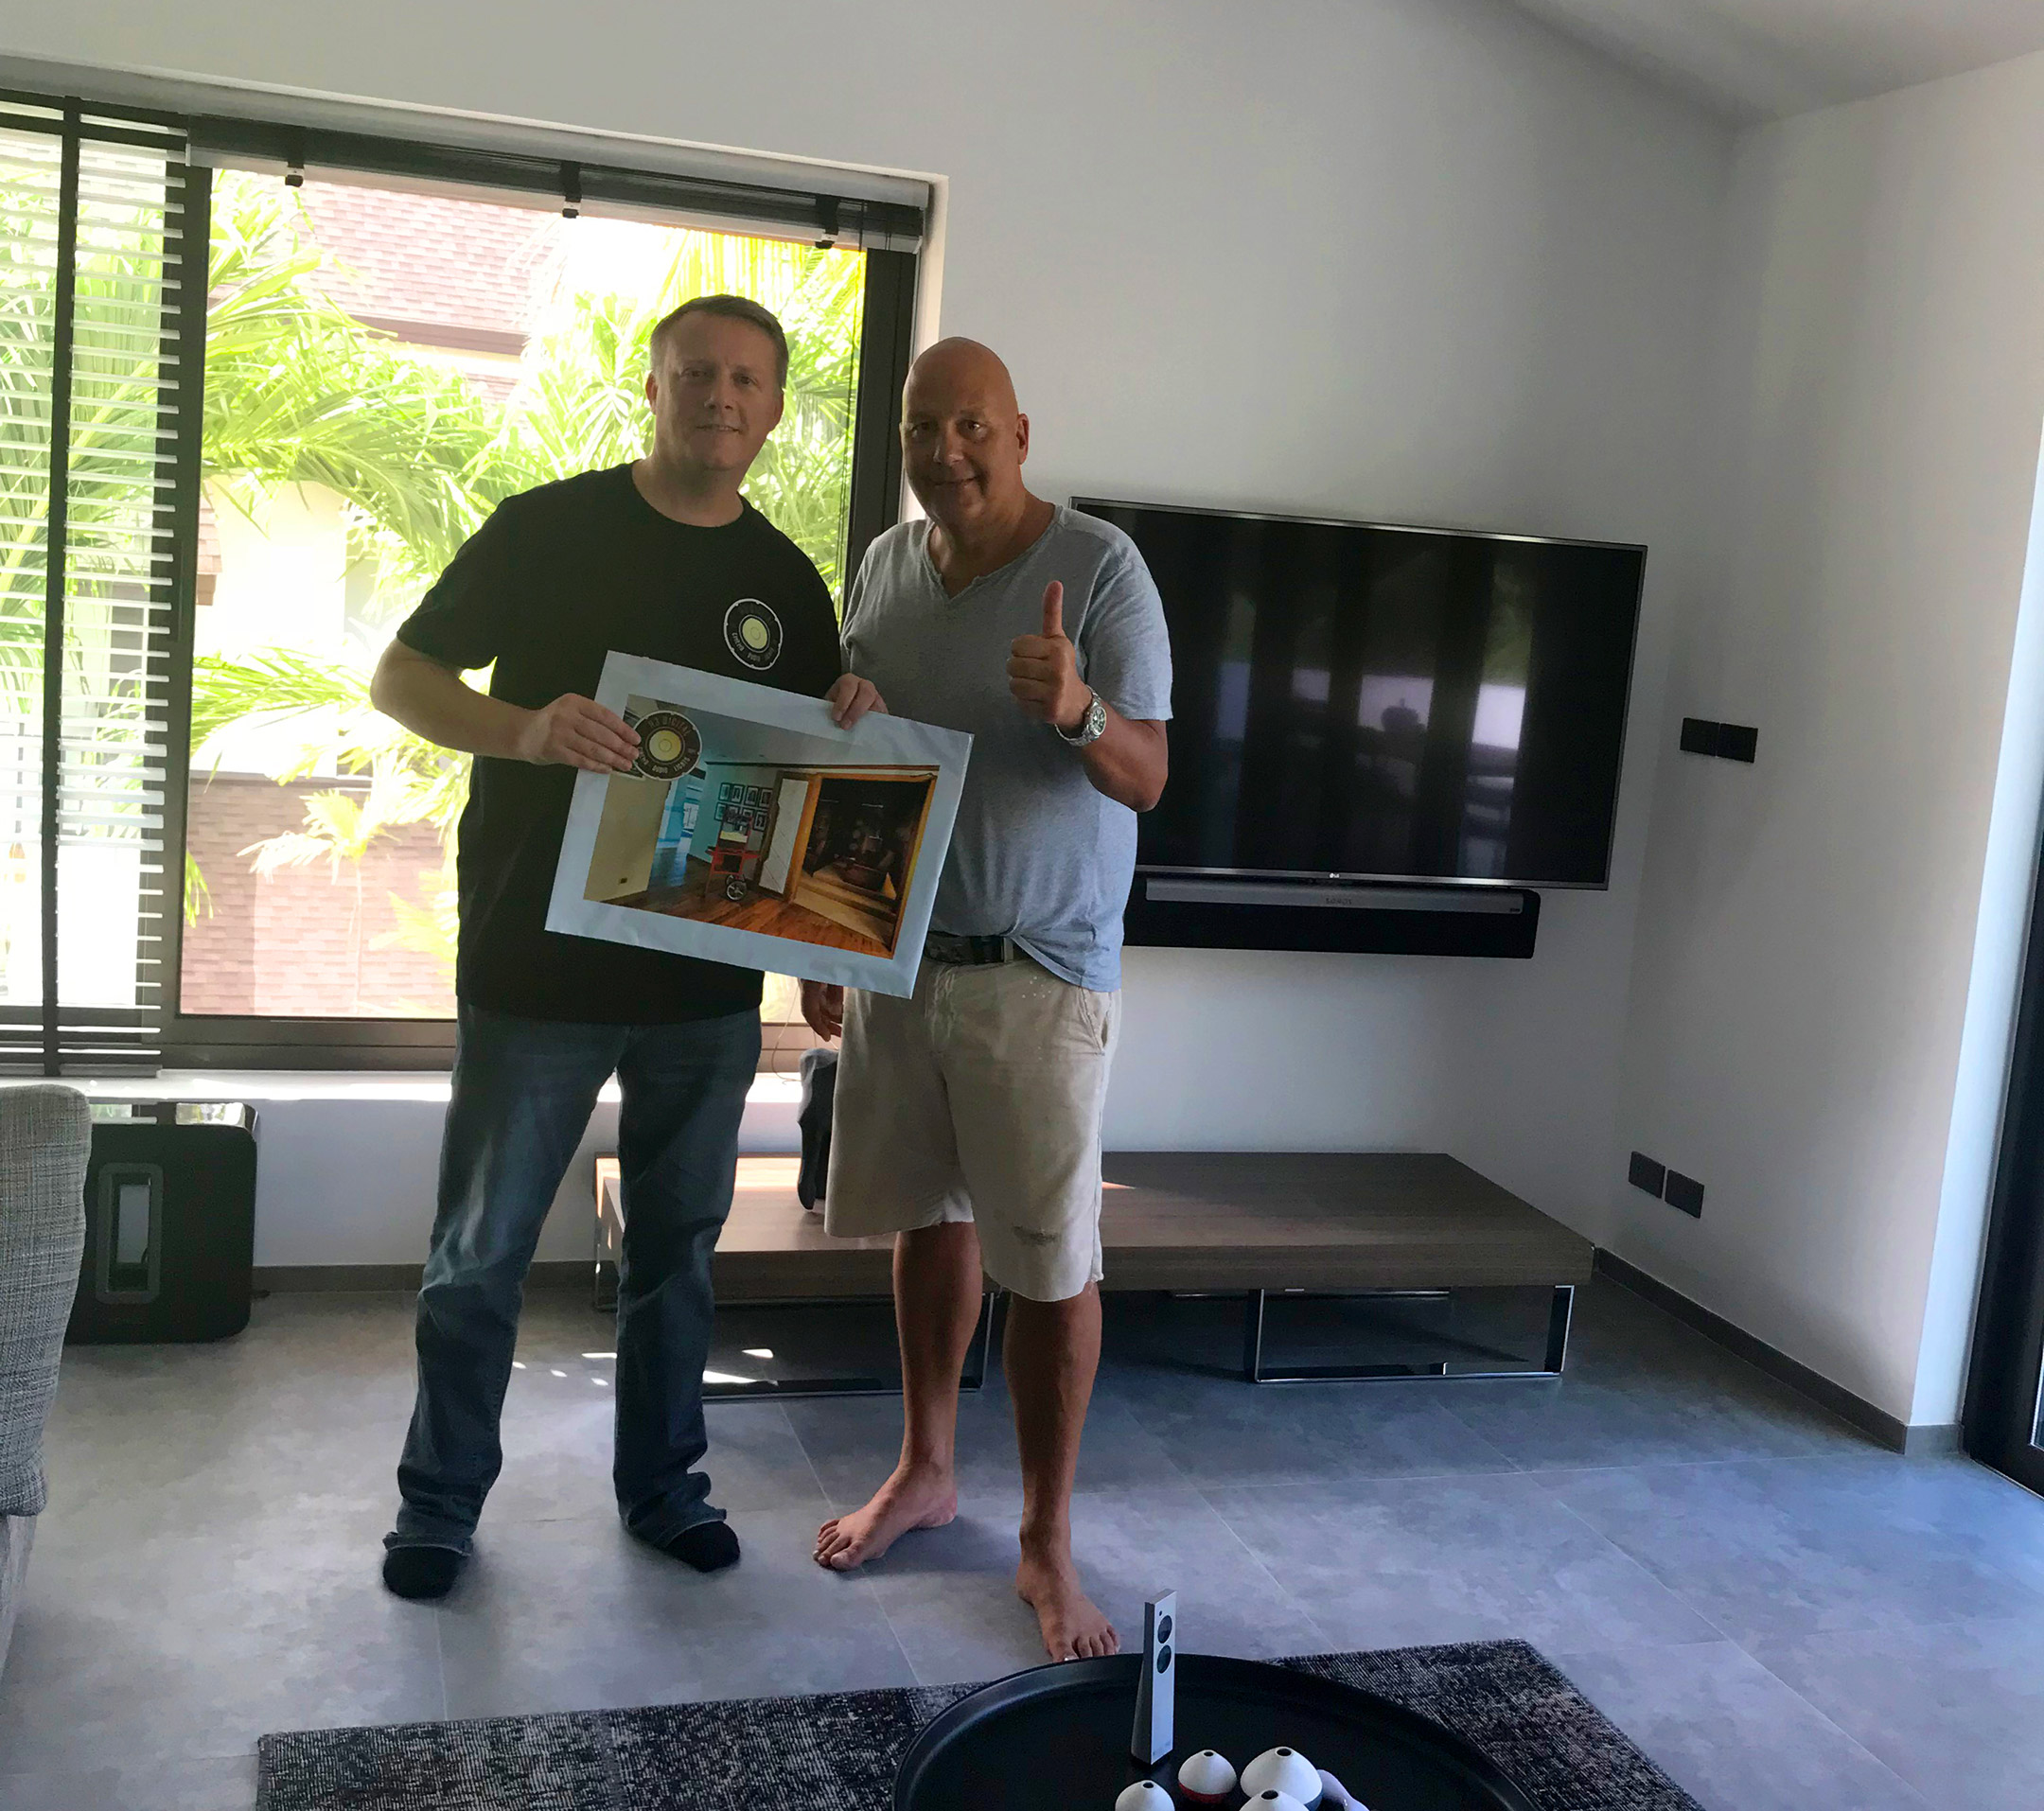 H3 Digital's Rob Hobbs hands over Jacky's Sonos and Big Screen TV project